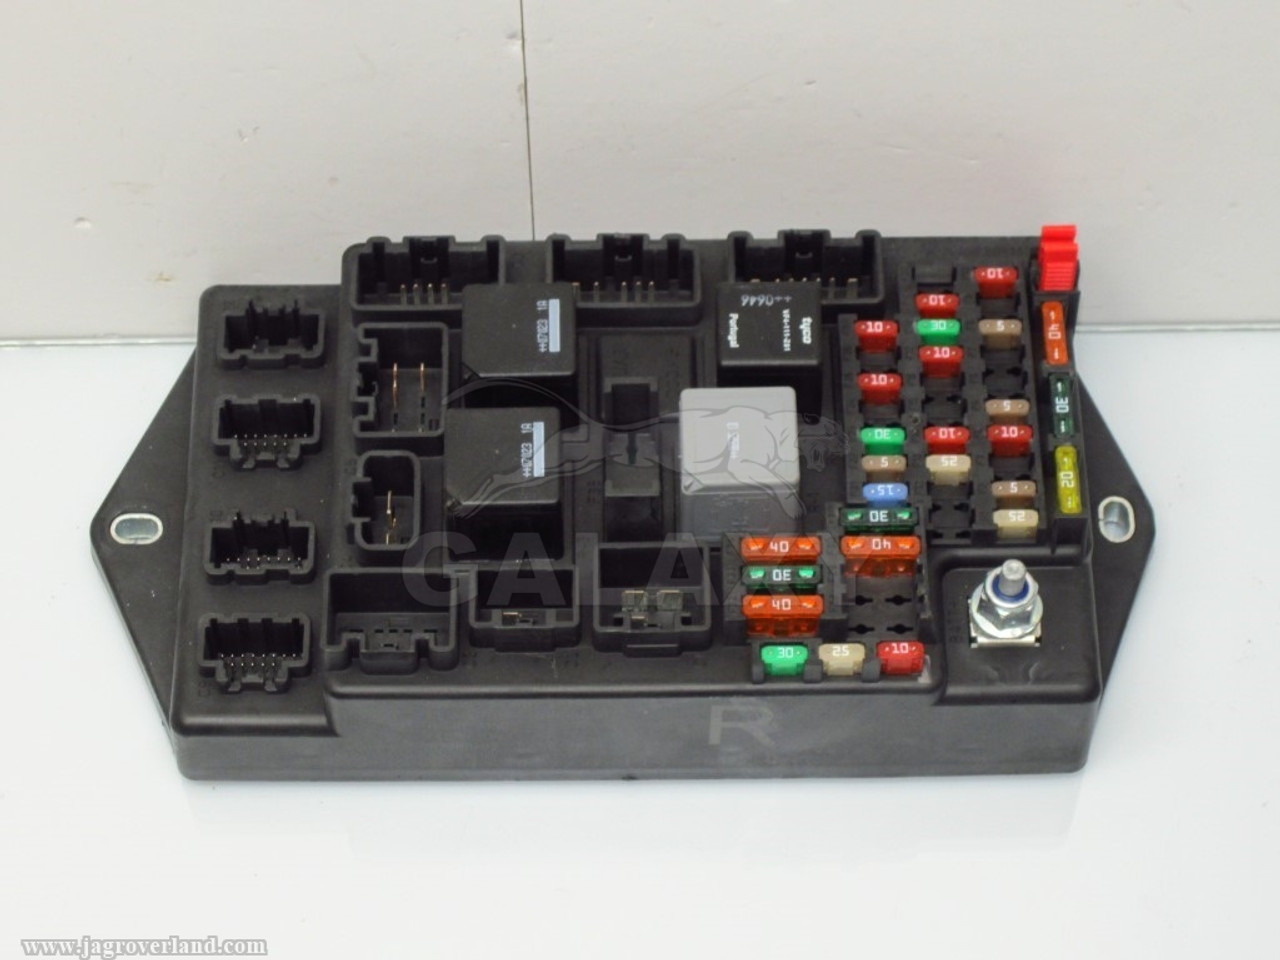 07 09 xk r rear central junction fuse box 6w83 14a073 ch c2p20669  [ 1024 x 768 Pixel ]